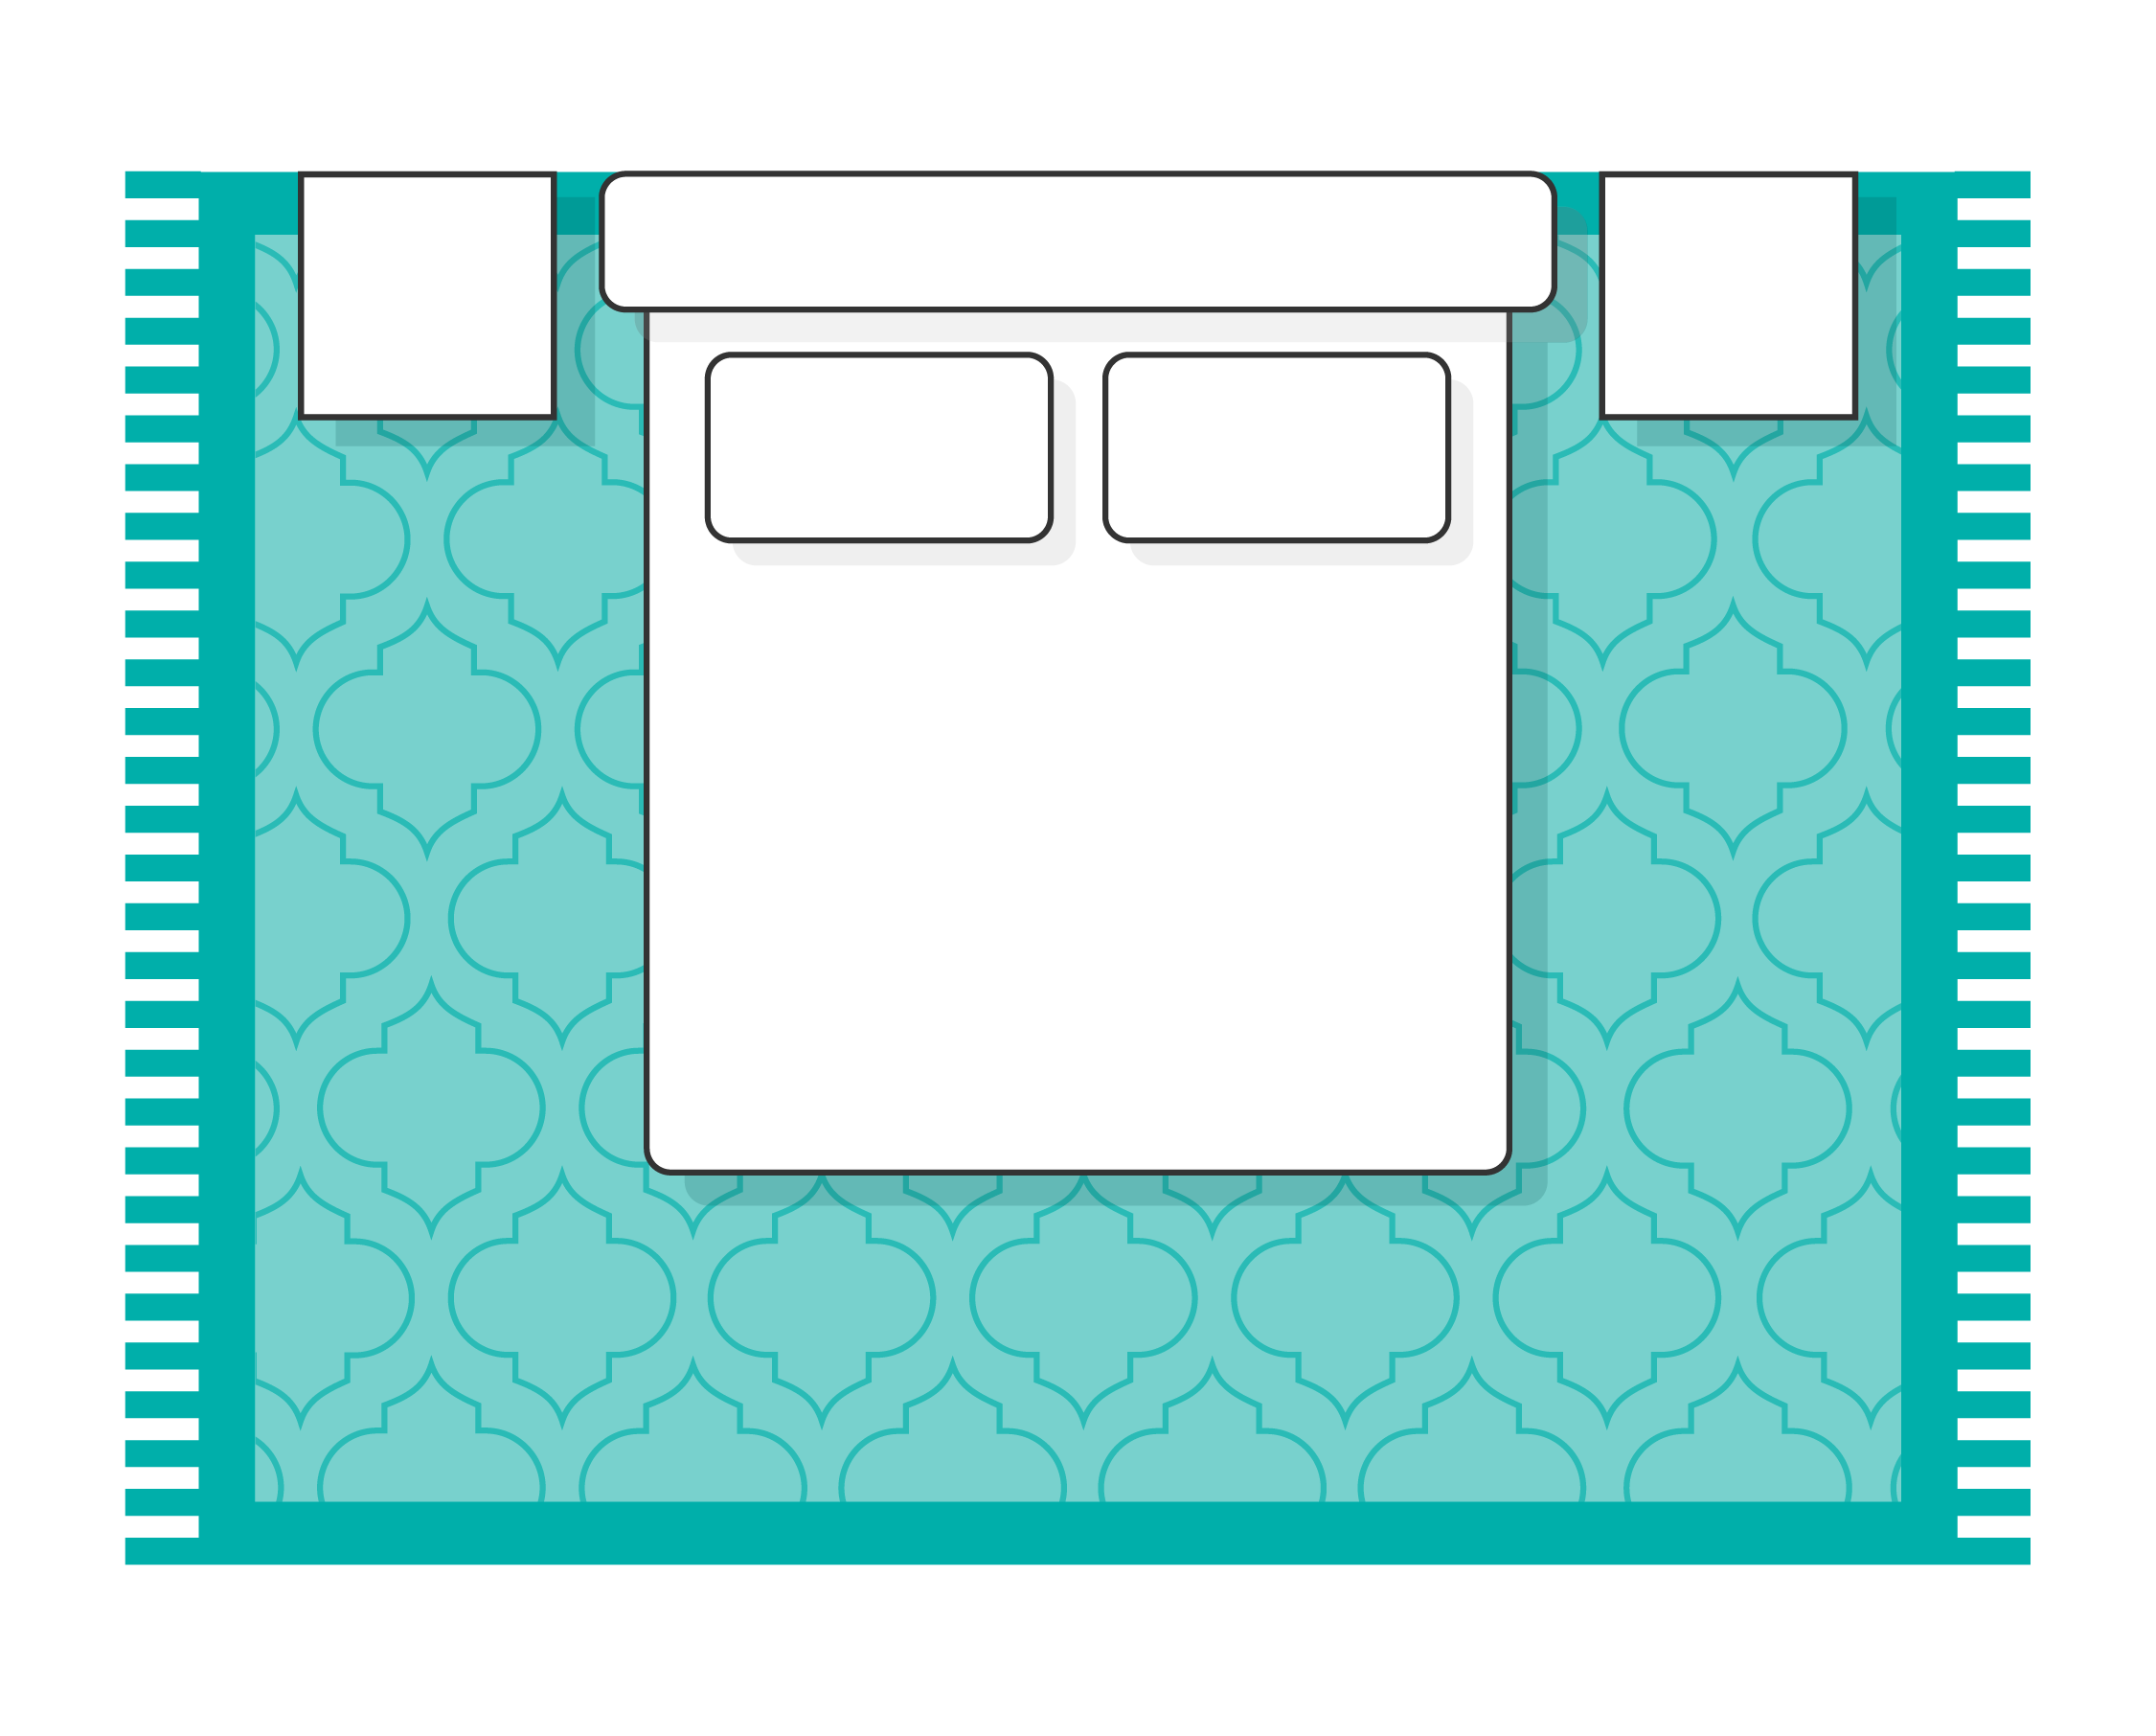 Bedroom layout with all legs on rug